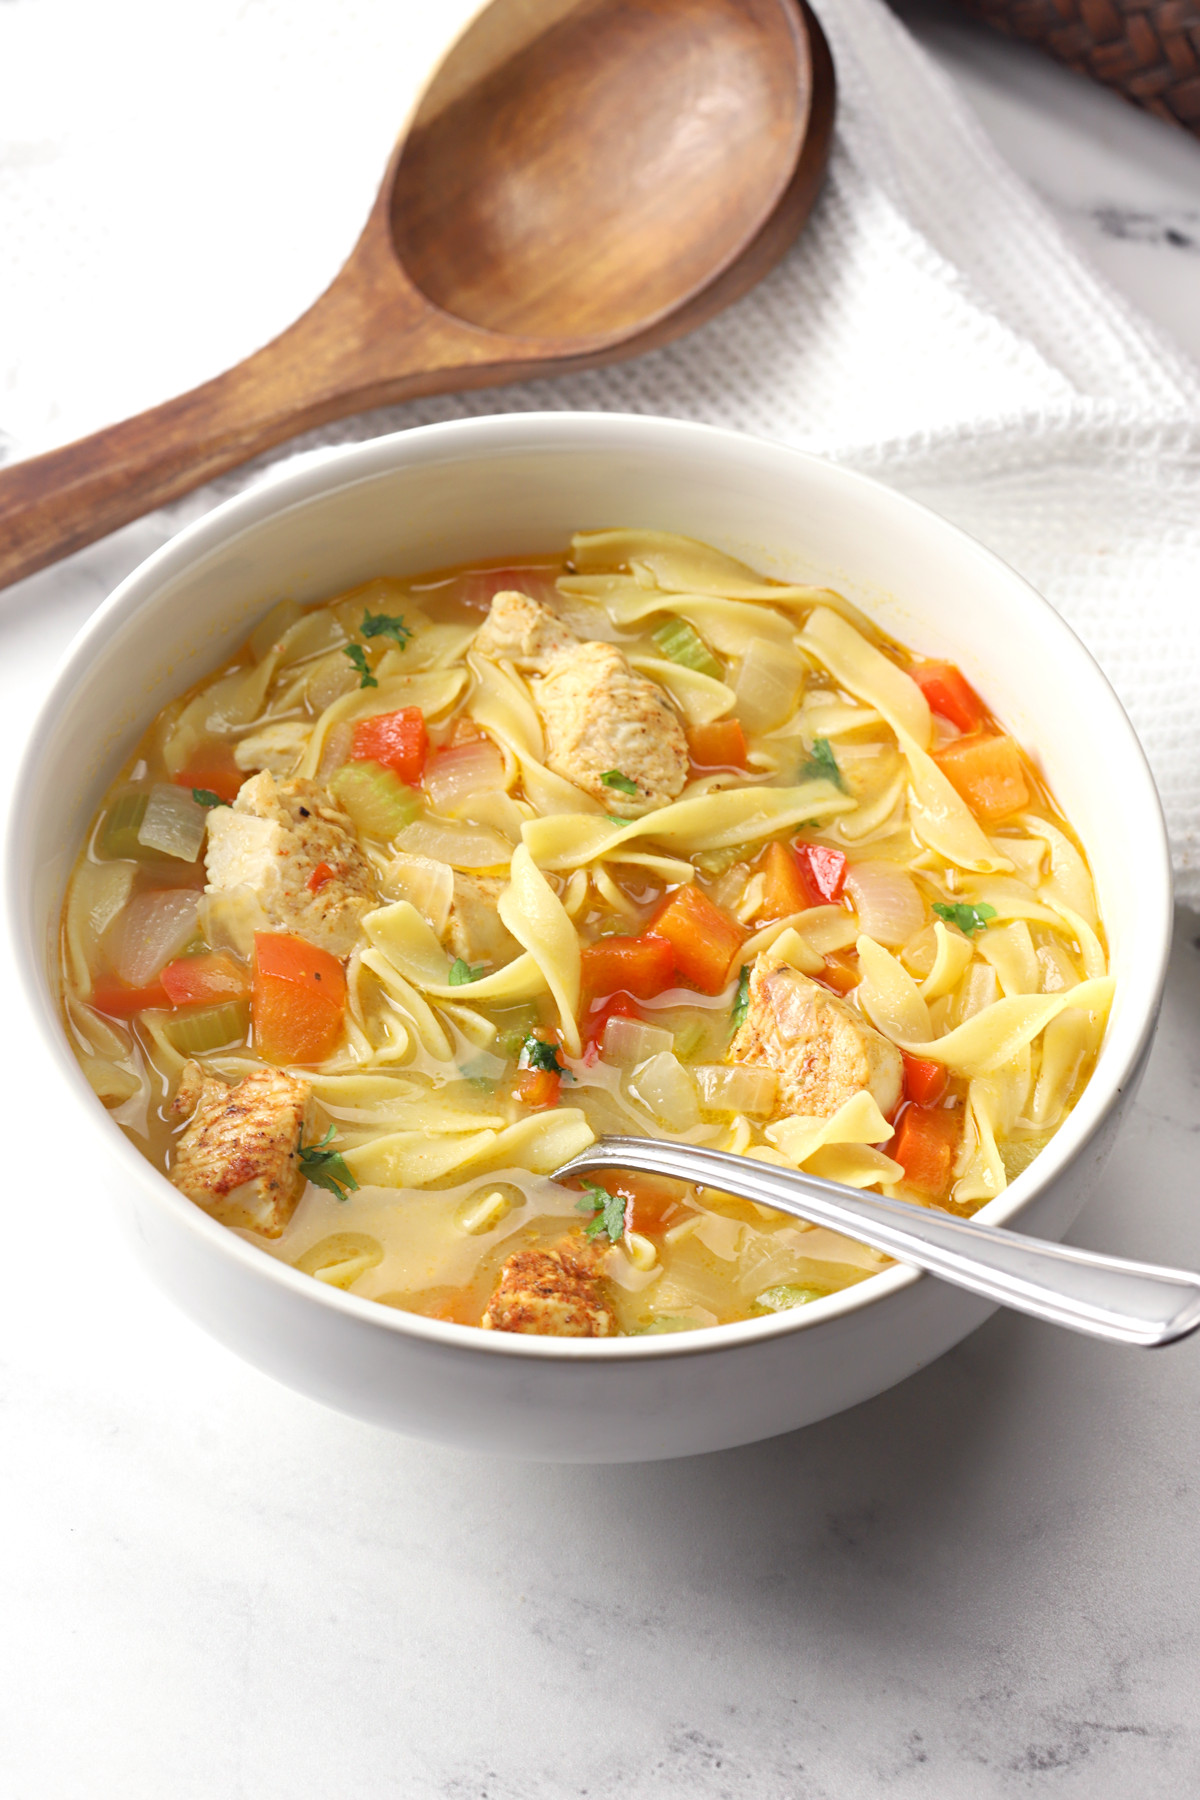 A white bowl filled with cajun chicken noodle soup.